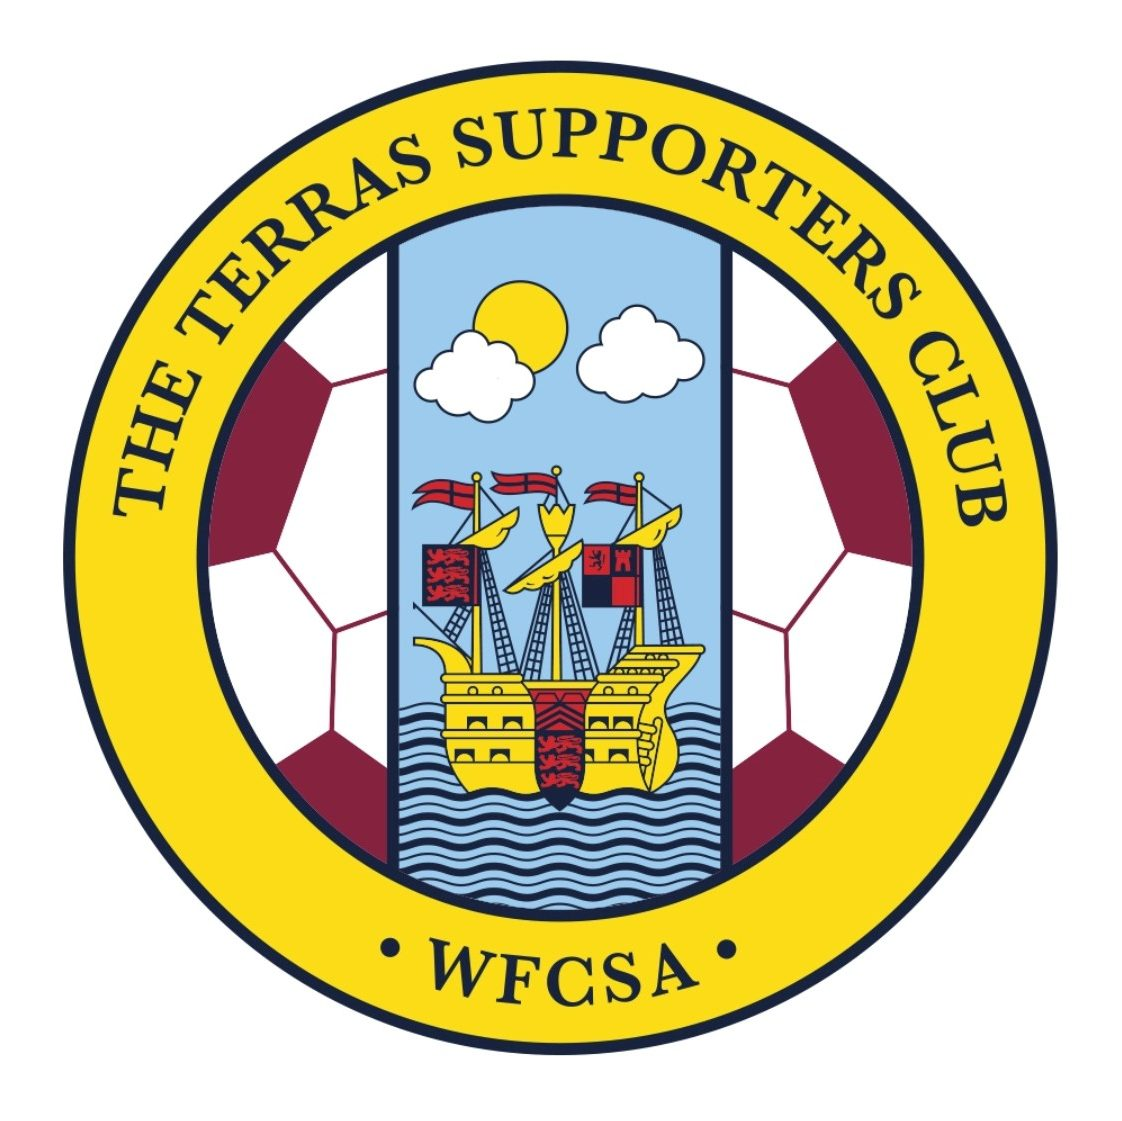 The Terras Supporters Club – WFCSA